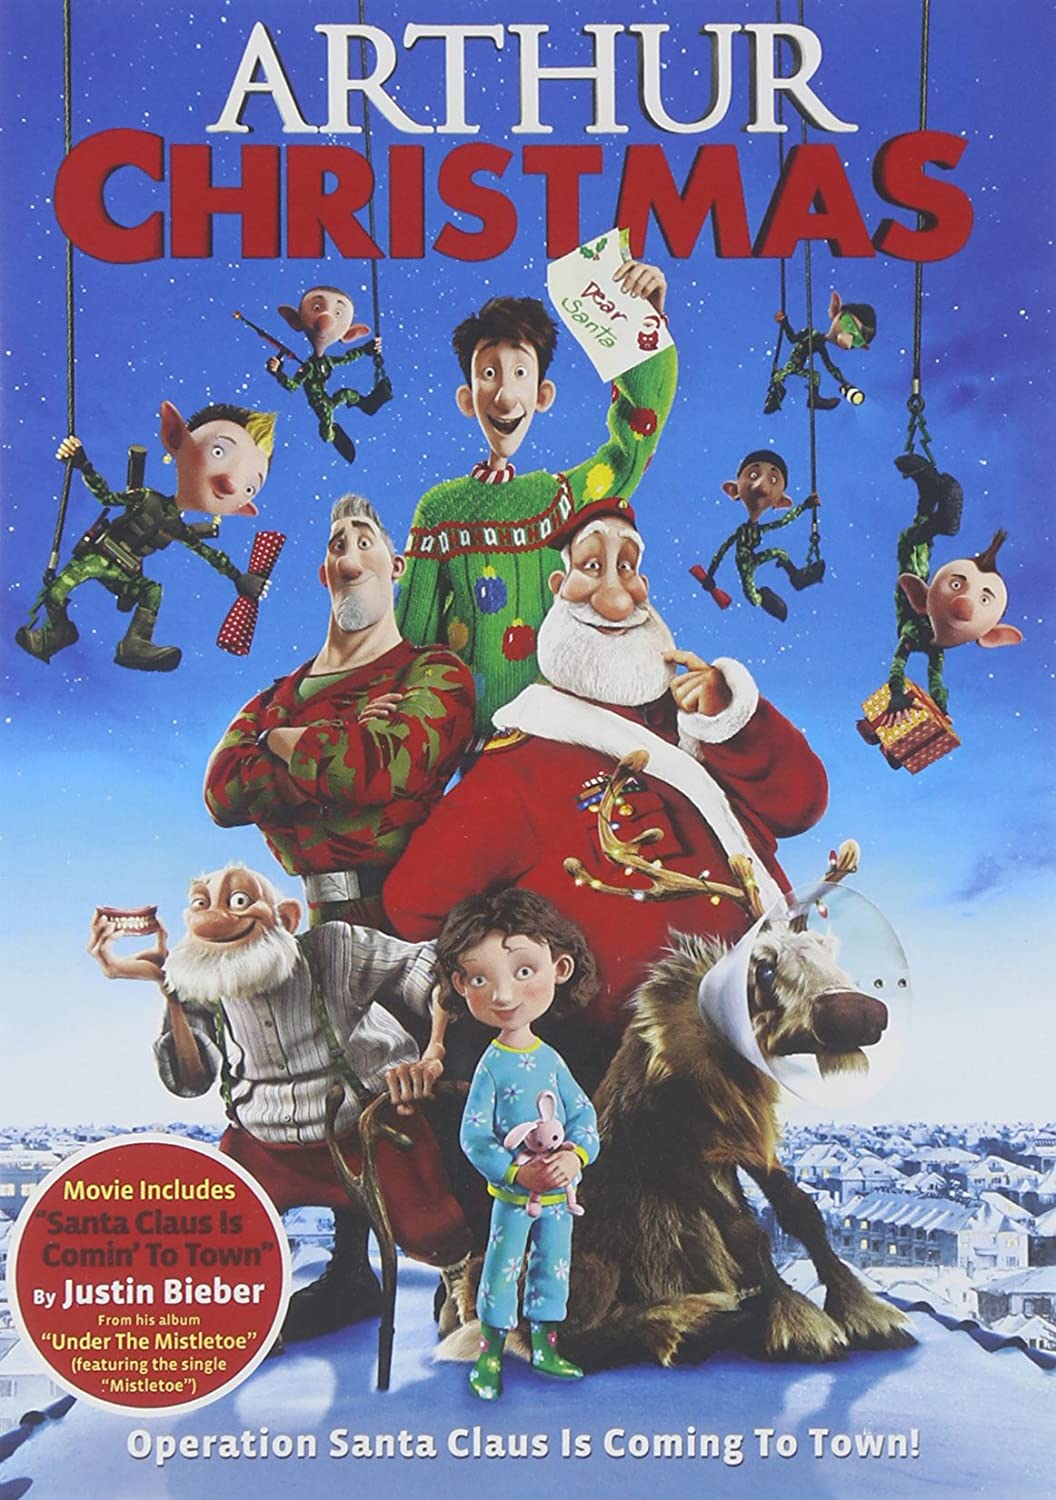 Amazon.com: Arthur Christmas: Sarah Smith, Peter Lord, David ...